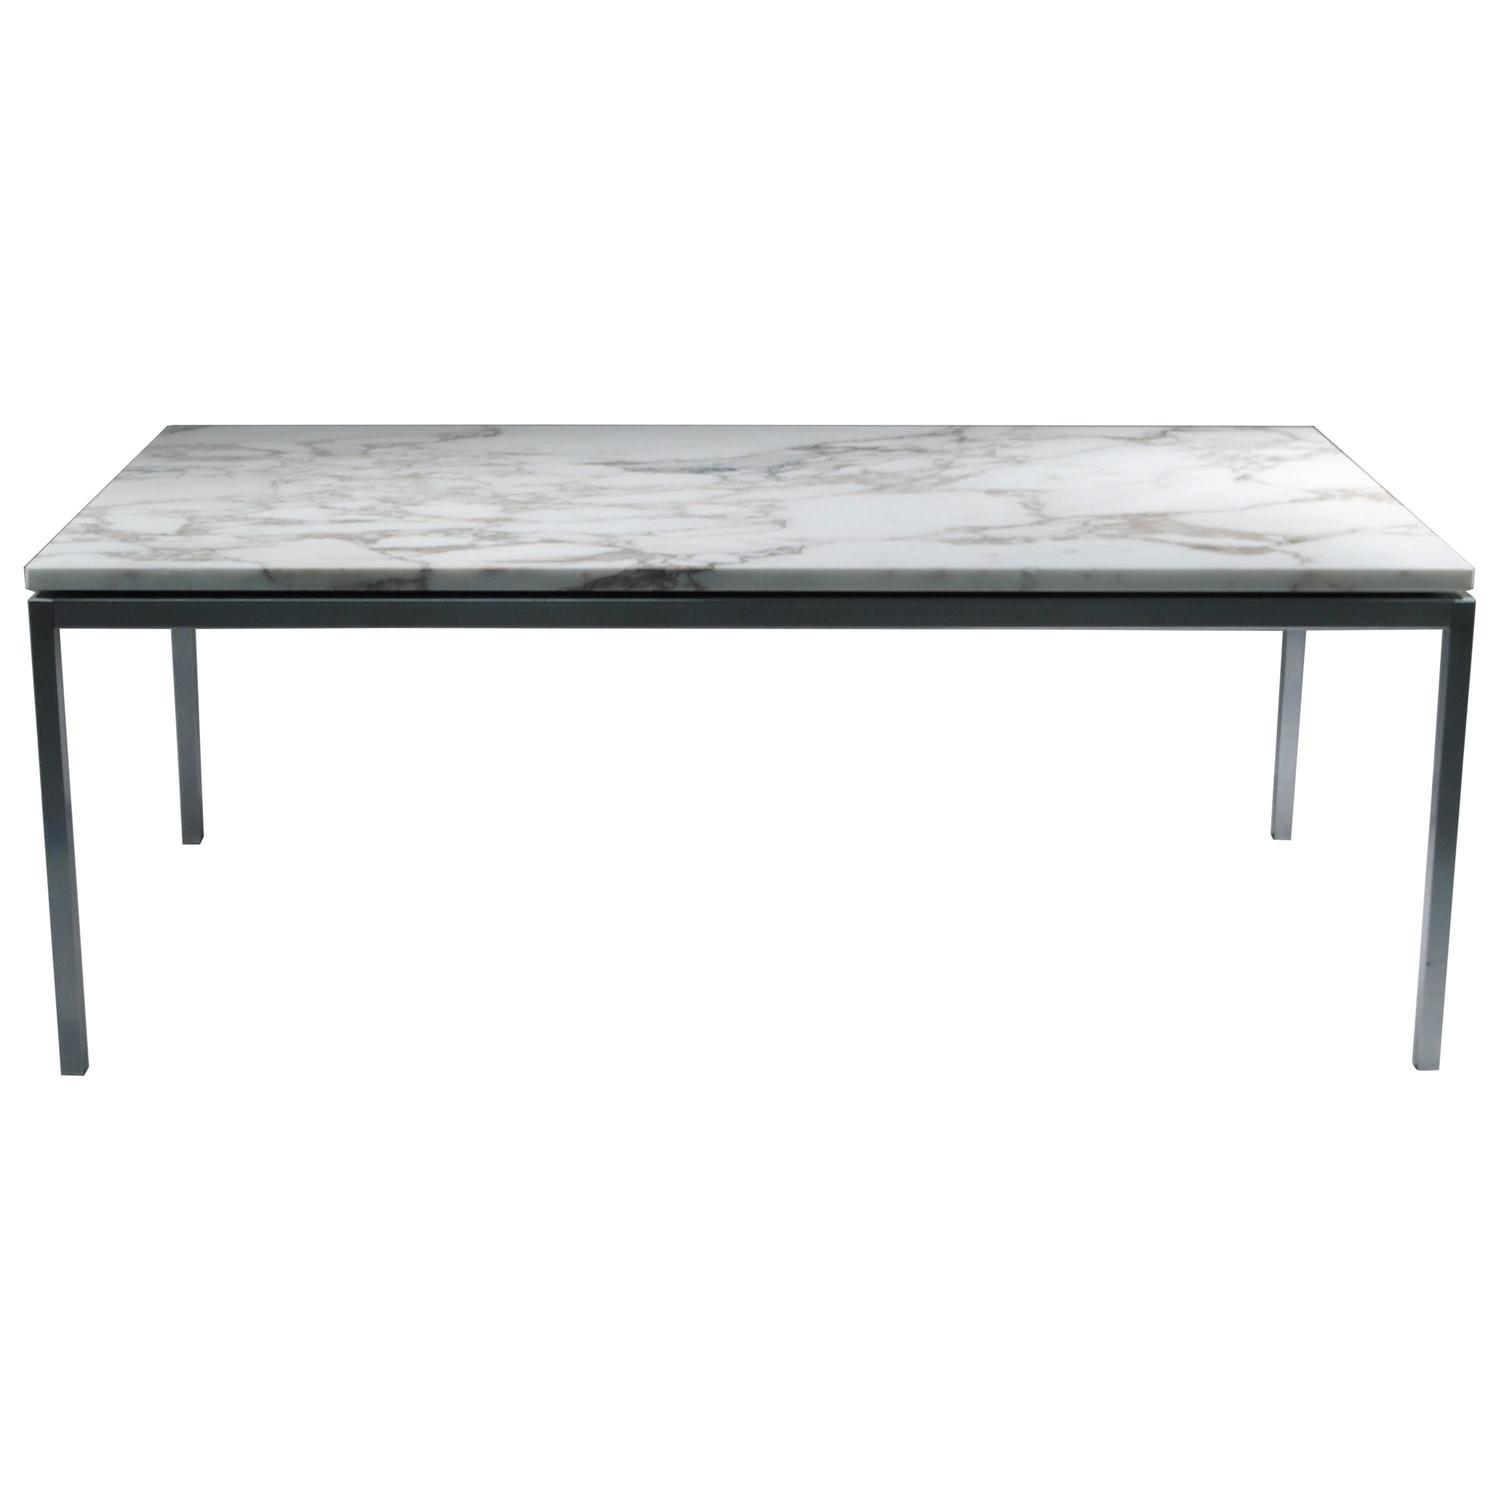 Florence knoll marble top coffee table at 1stdibs Florence knoll coffee table